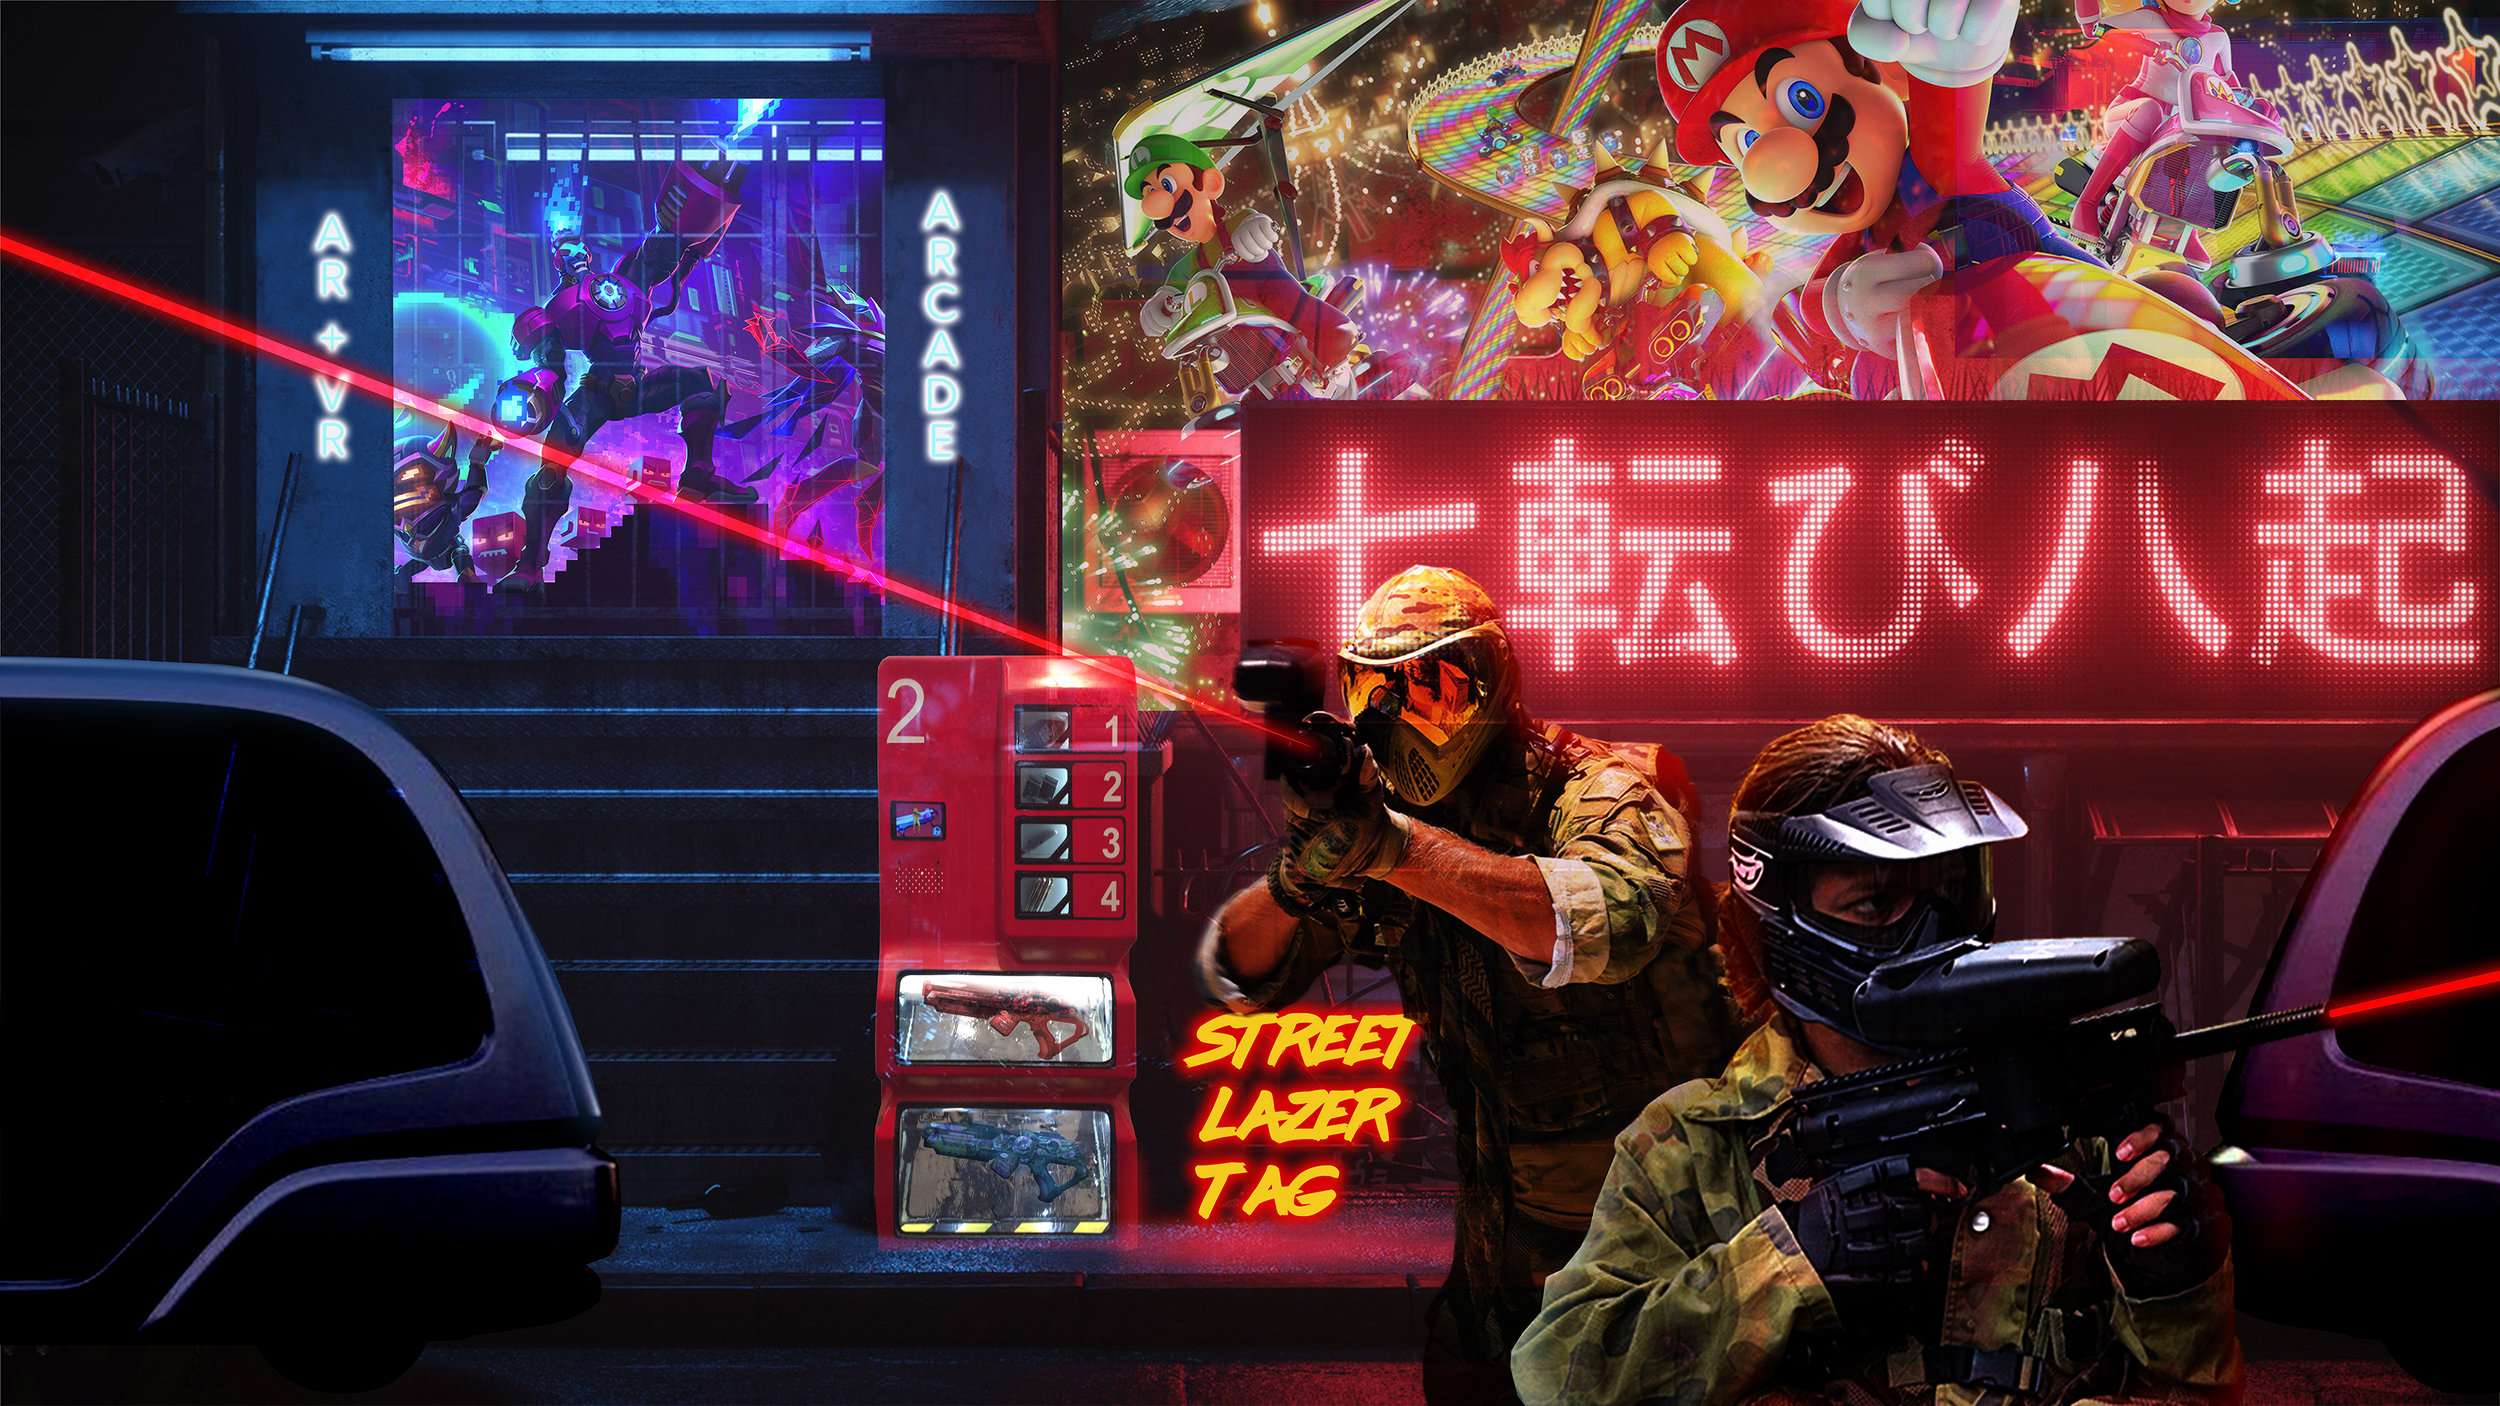 An example of city wide gaming: Augmented Reality Laser Tag